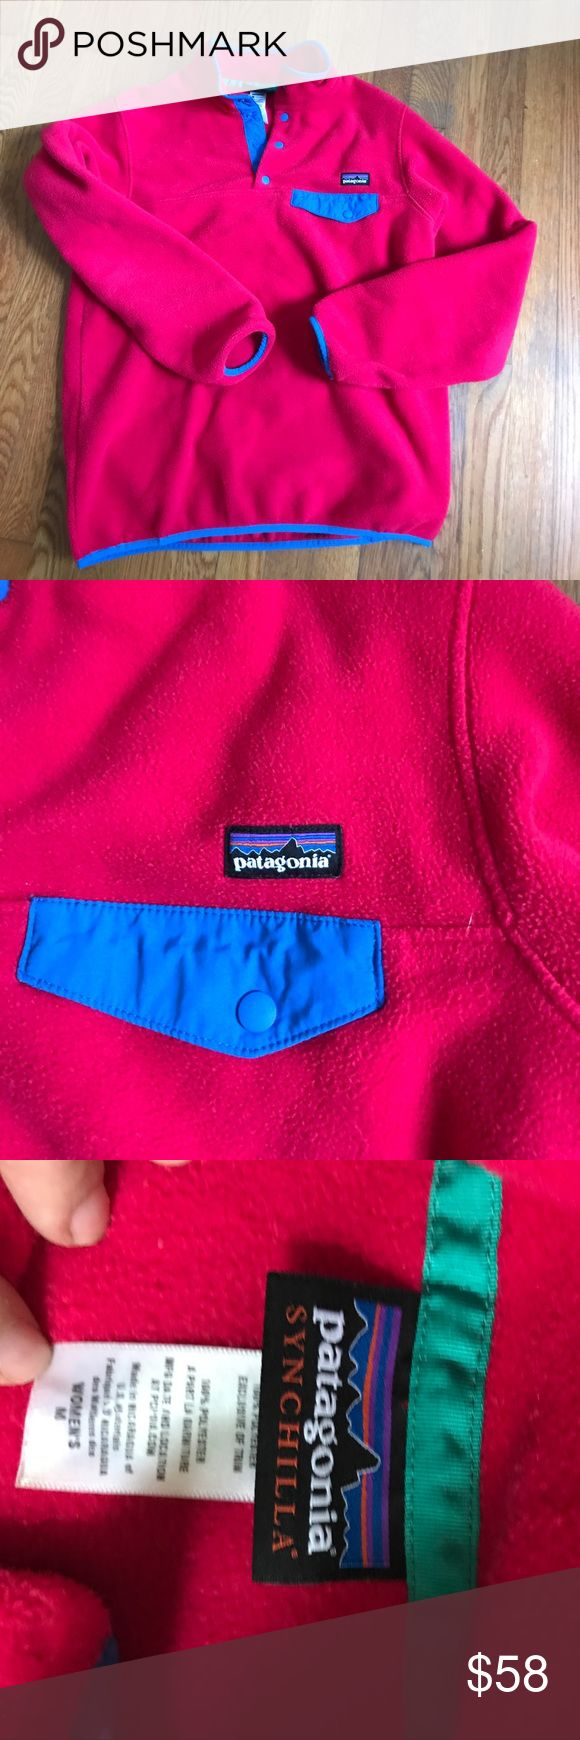 FALL 🎃👻Patagonia Synchilla pullover Fall is here! Buy from my closet much cheaper than in the stores! Excellent condition women's medium 💯 % polyester Patagonia fleece. Pull over. Patagonia Jackets & Coats